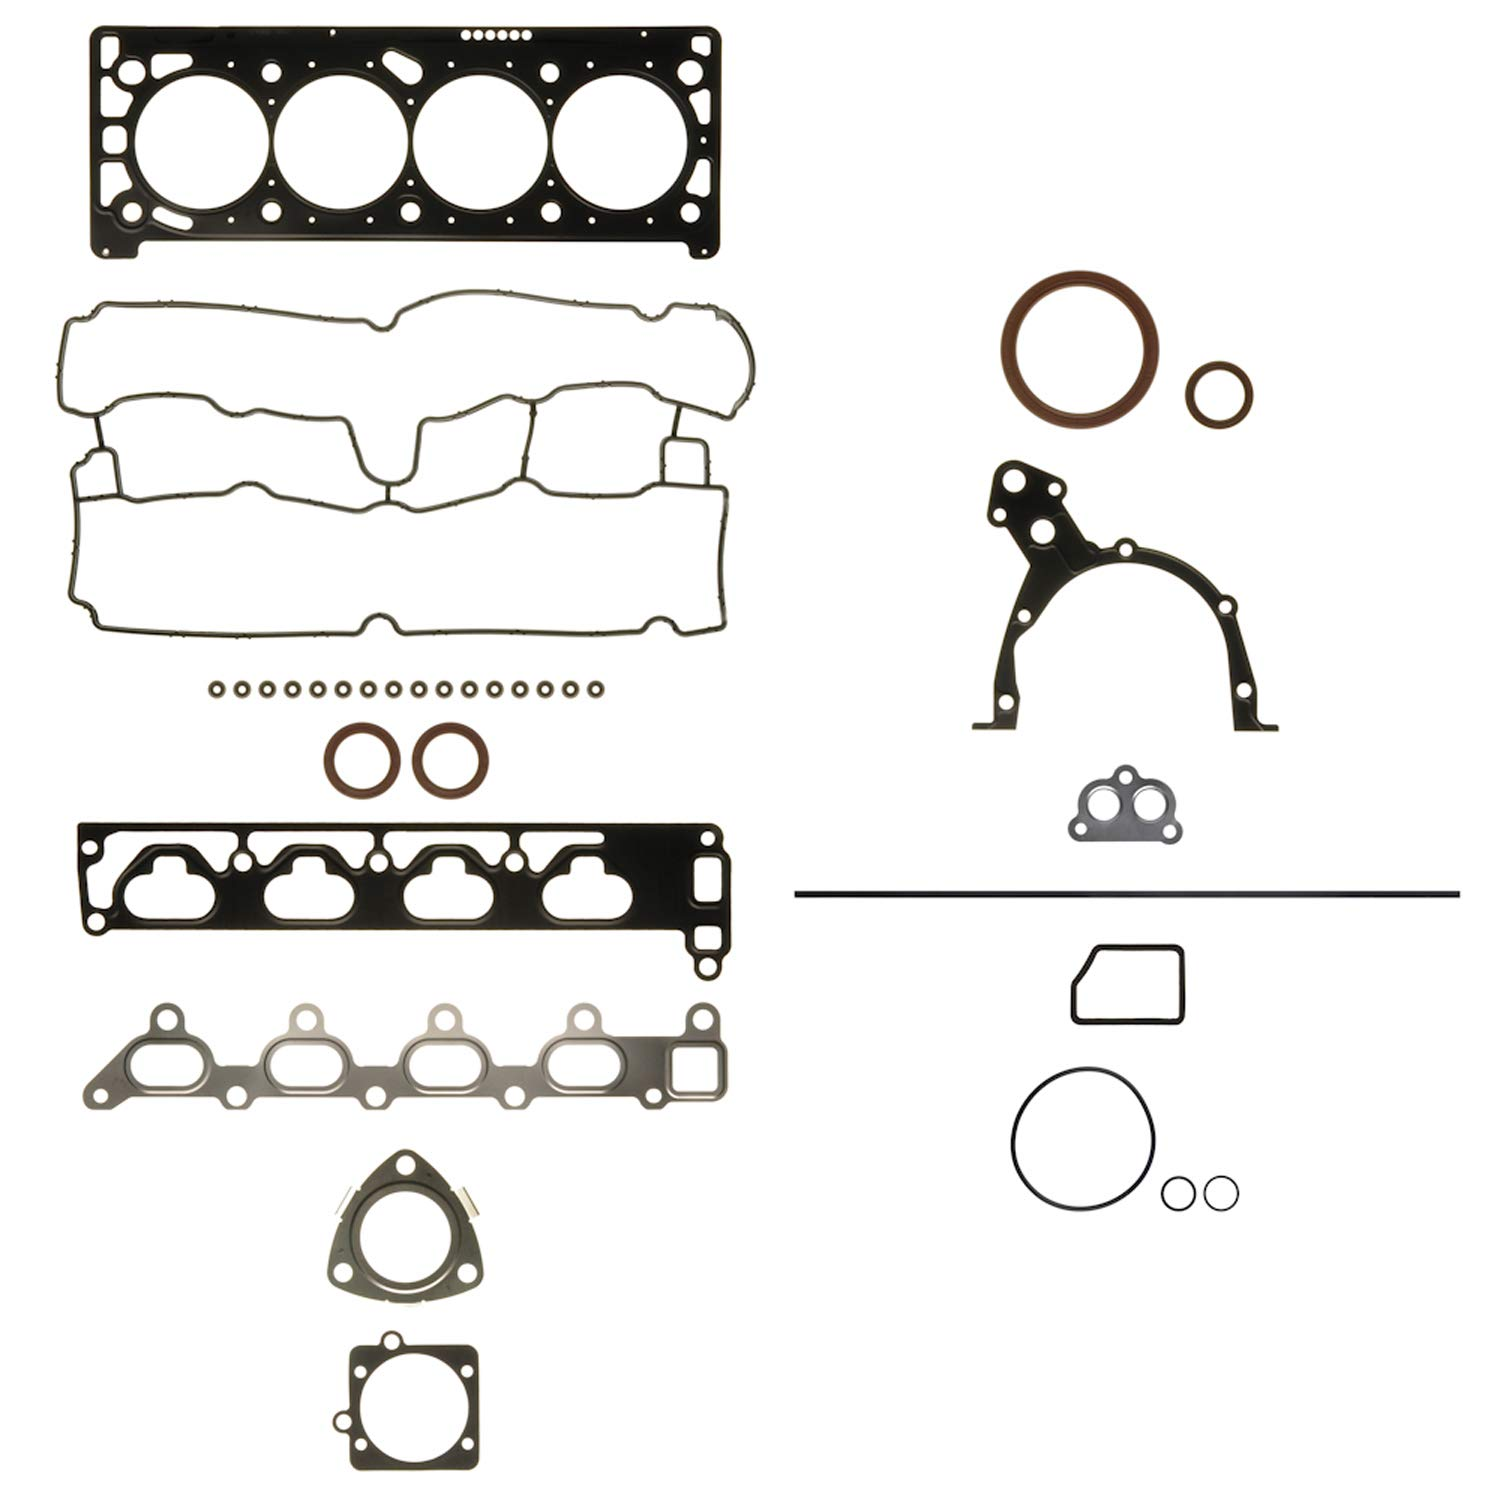 AJUSA 50366800 Full Gasket Set, Engine Auto Juntas S.A.U.